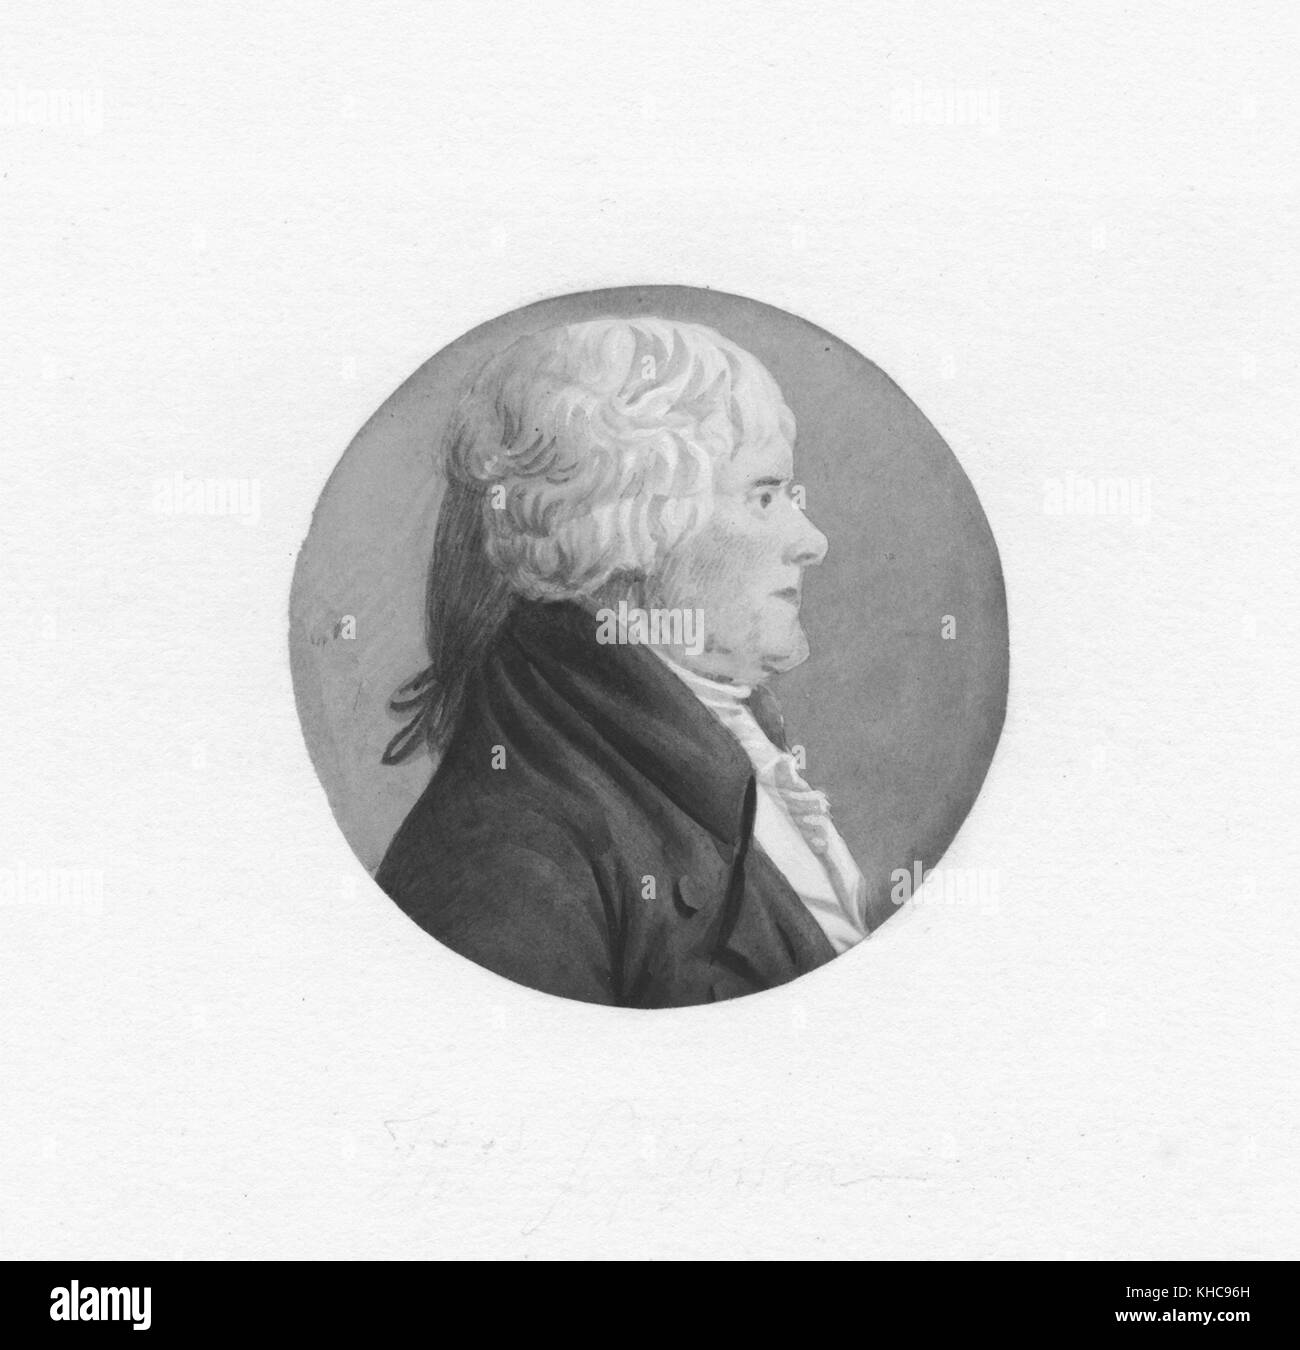 A profile view portrait of Thomas Jefferson, older and heavier than typically depicted, 1804. From the New York - Stock Image